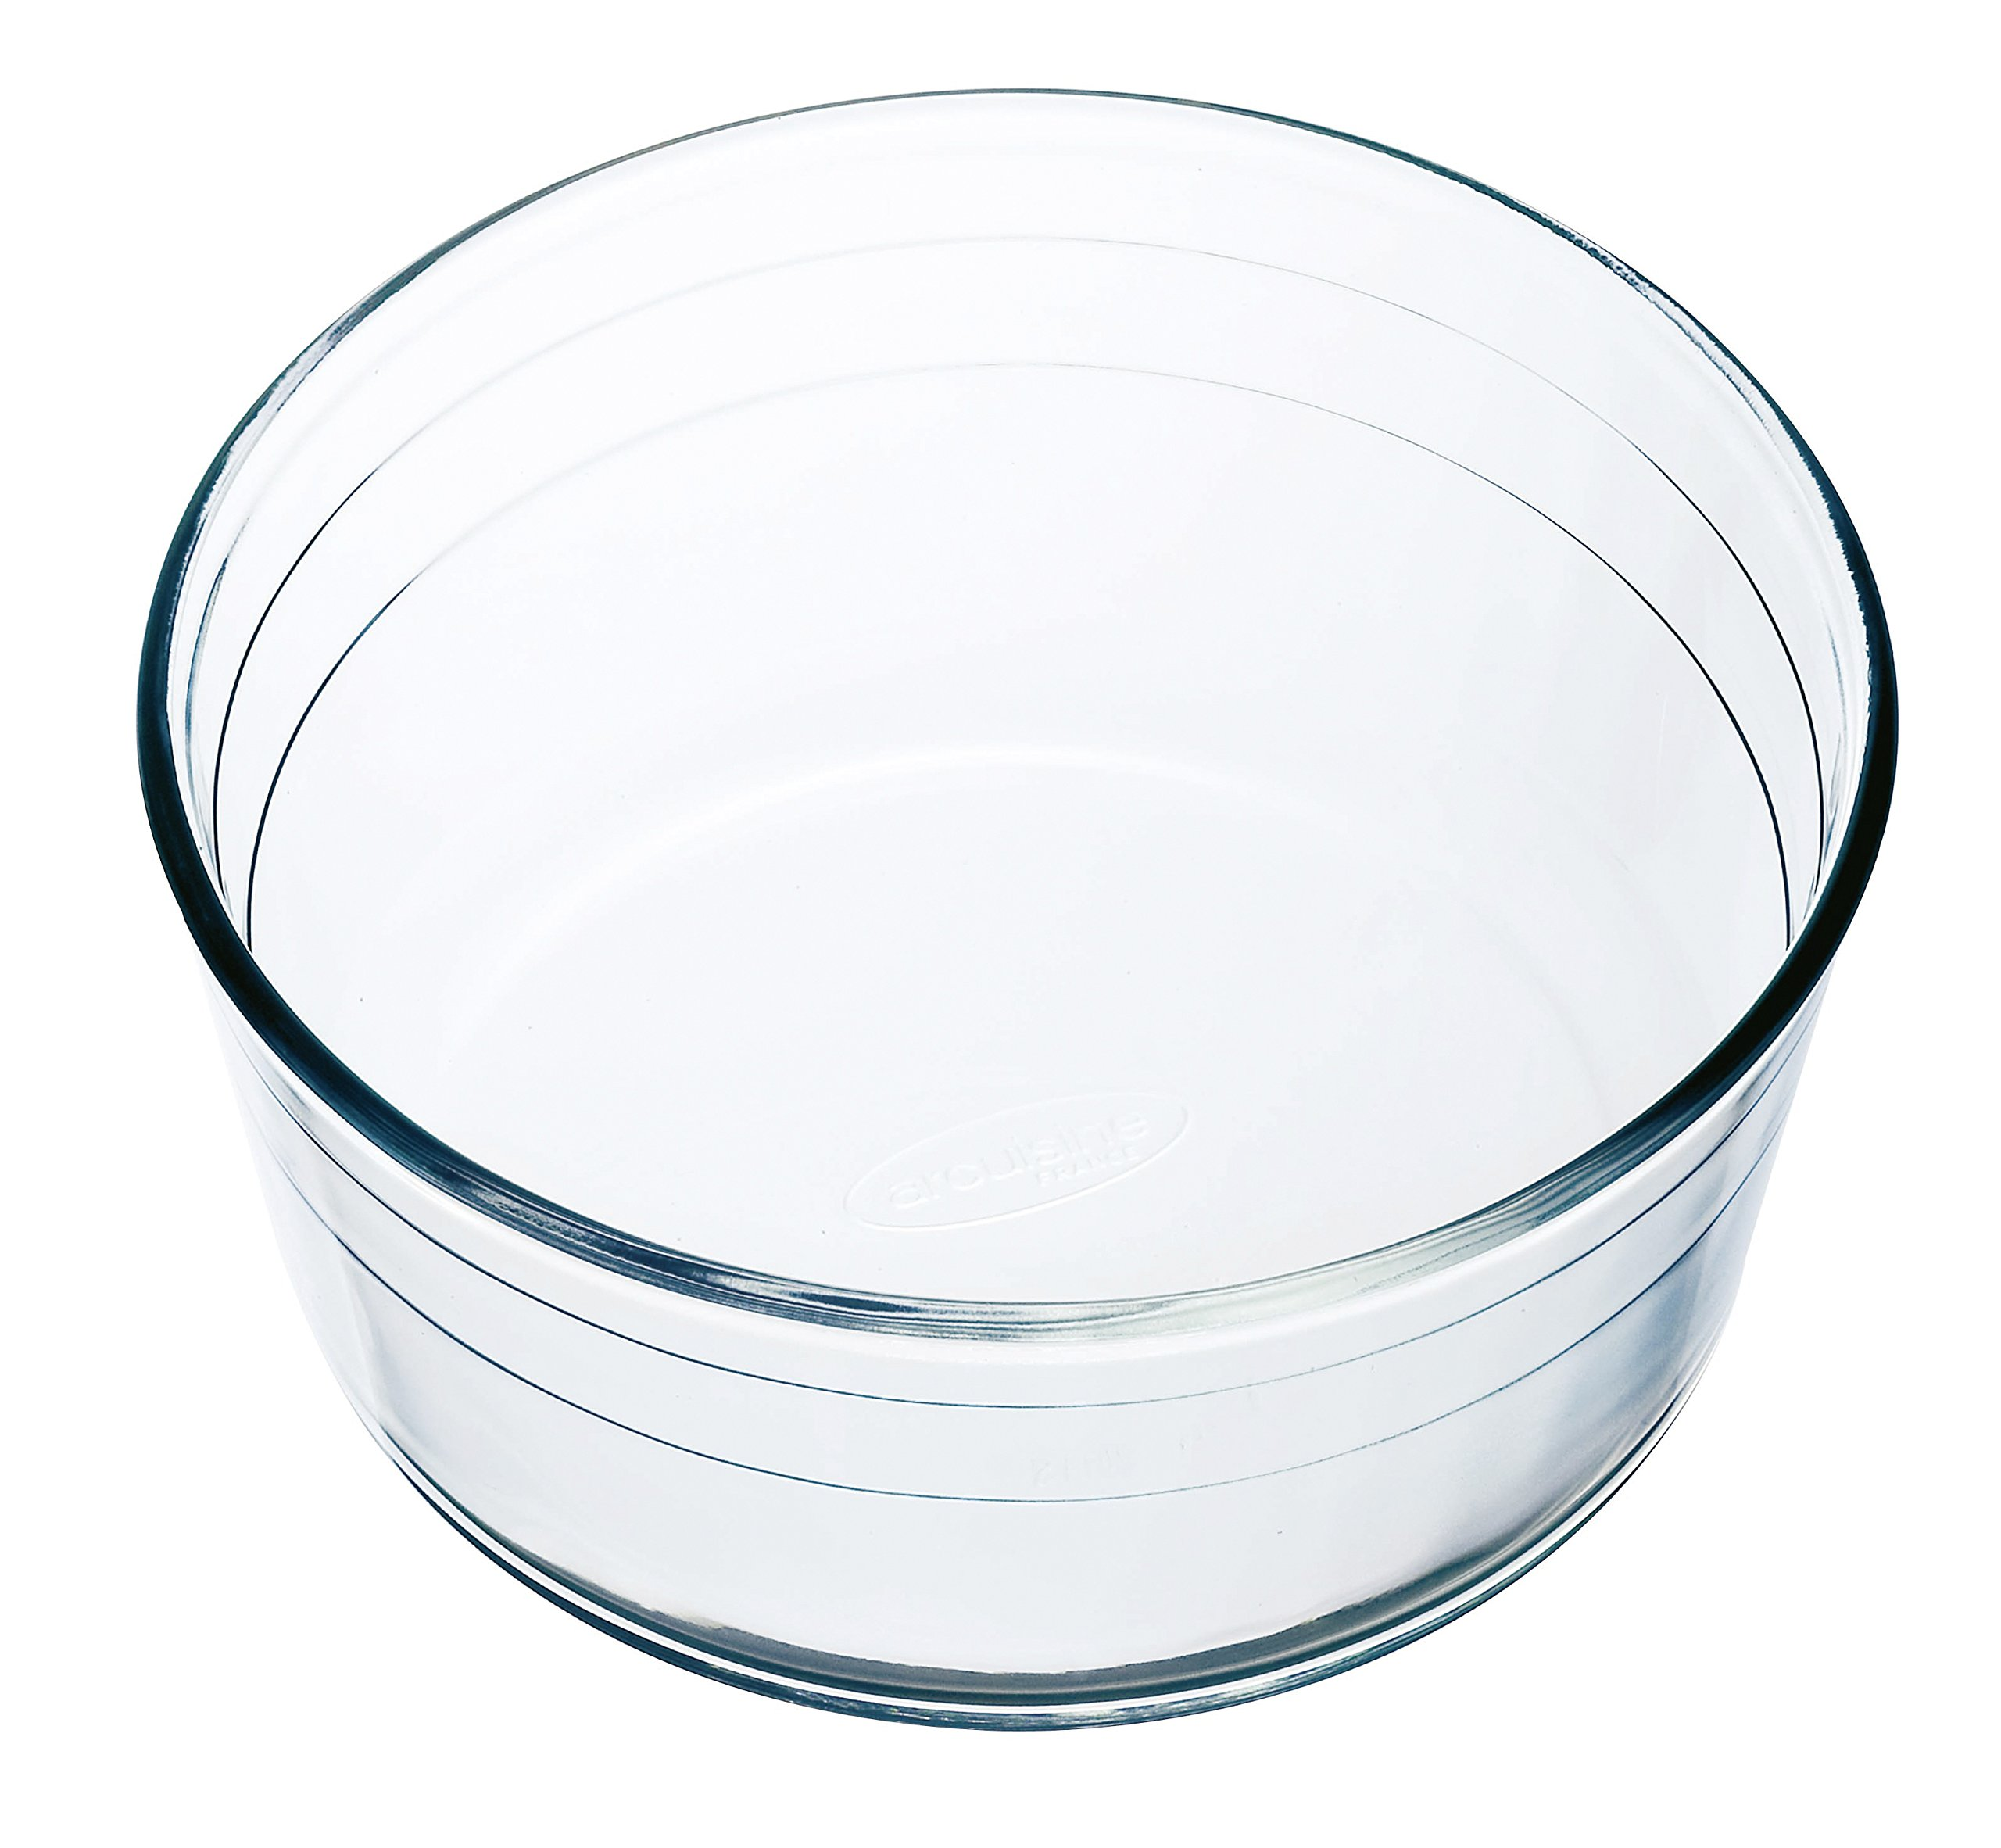 Arcuisine Borosilicate Glass Soufflé Dish 8.5 Inches (21 Centimeters) by International Cookware (Image #3)